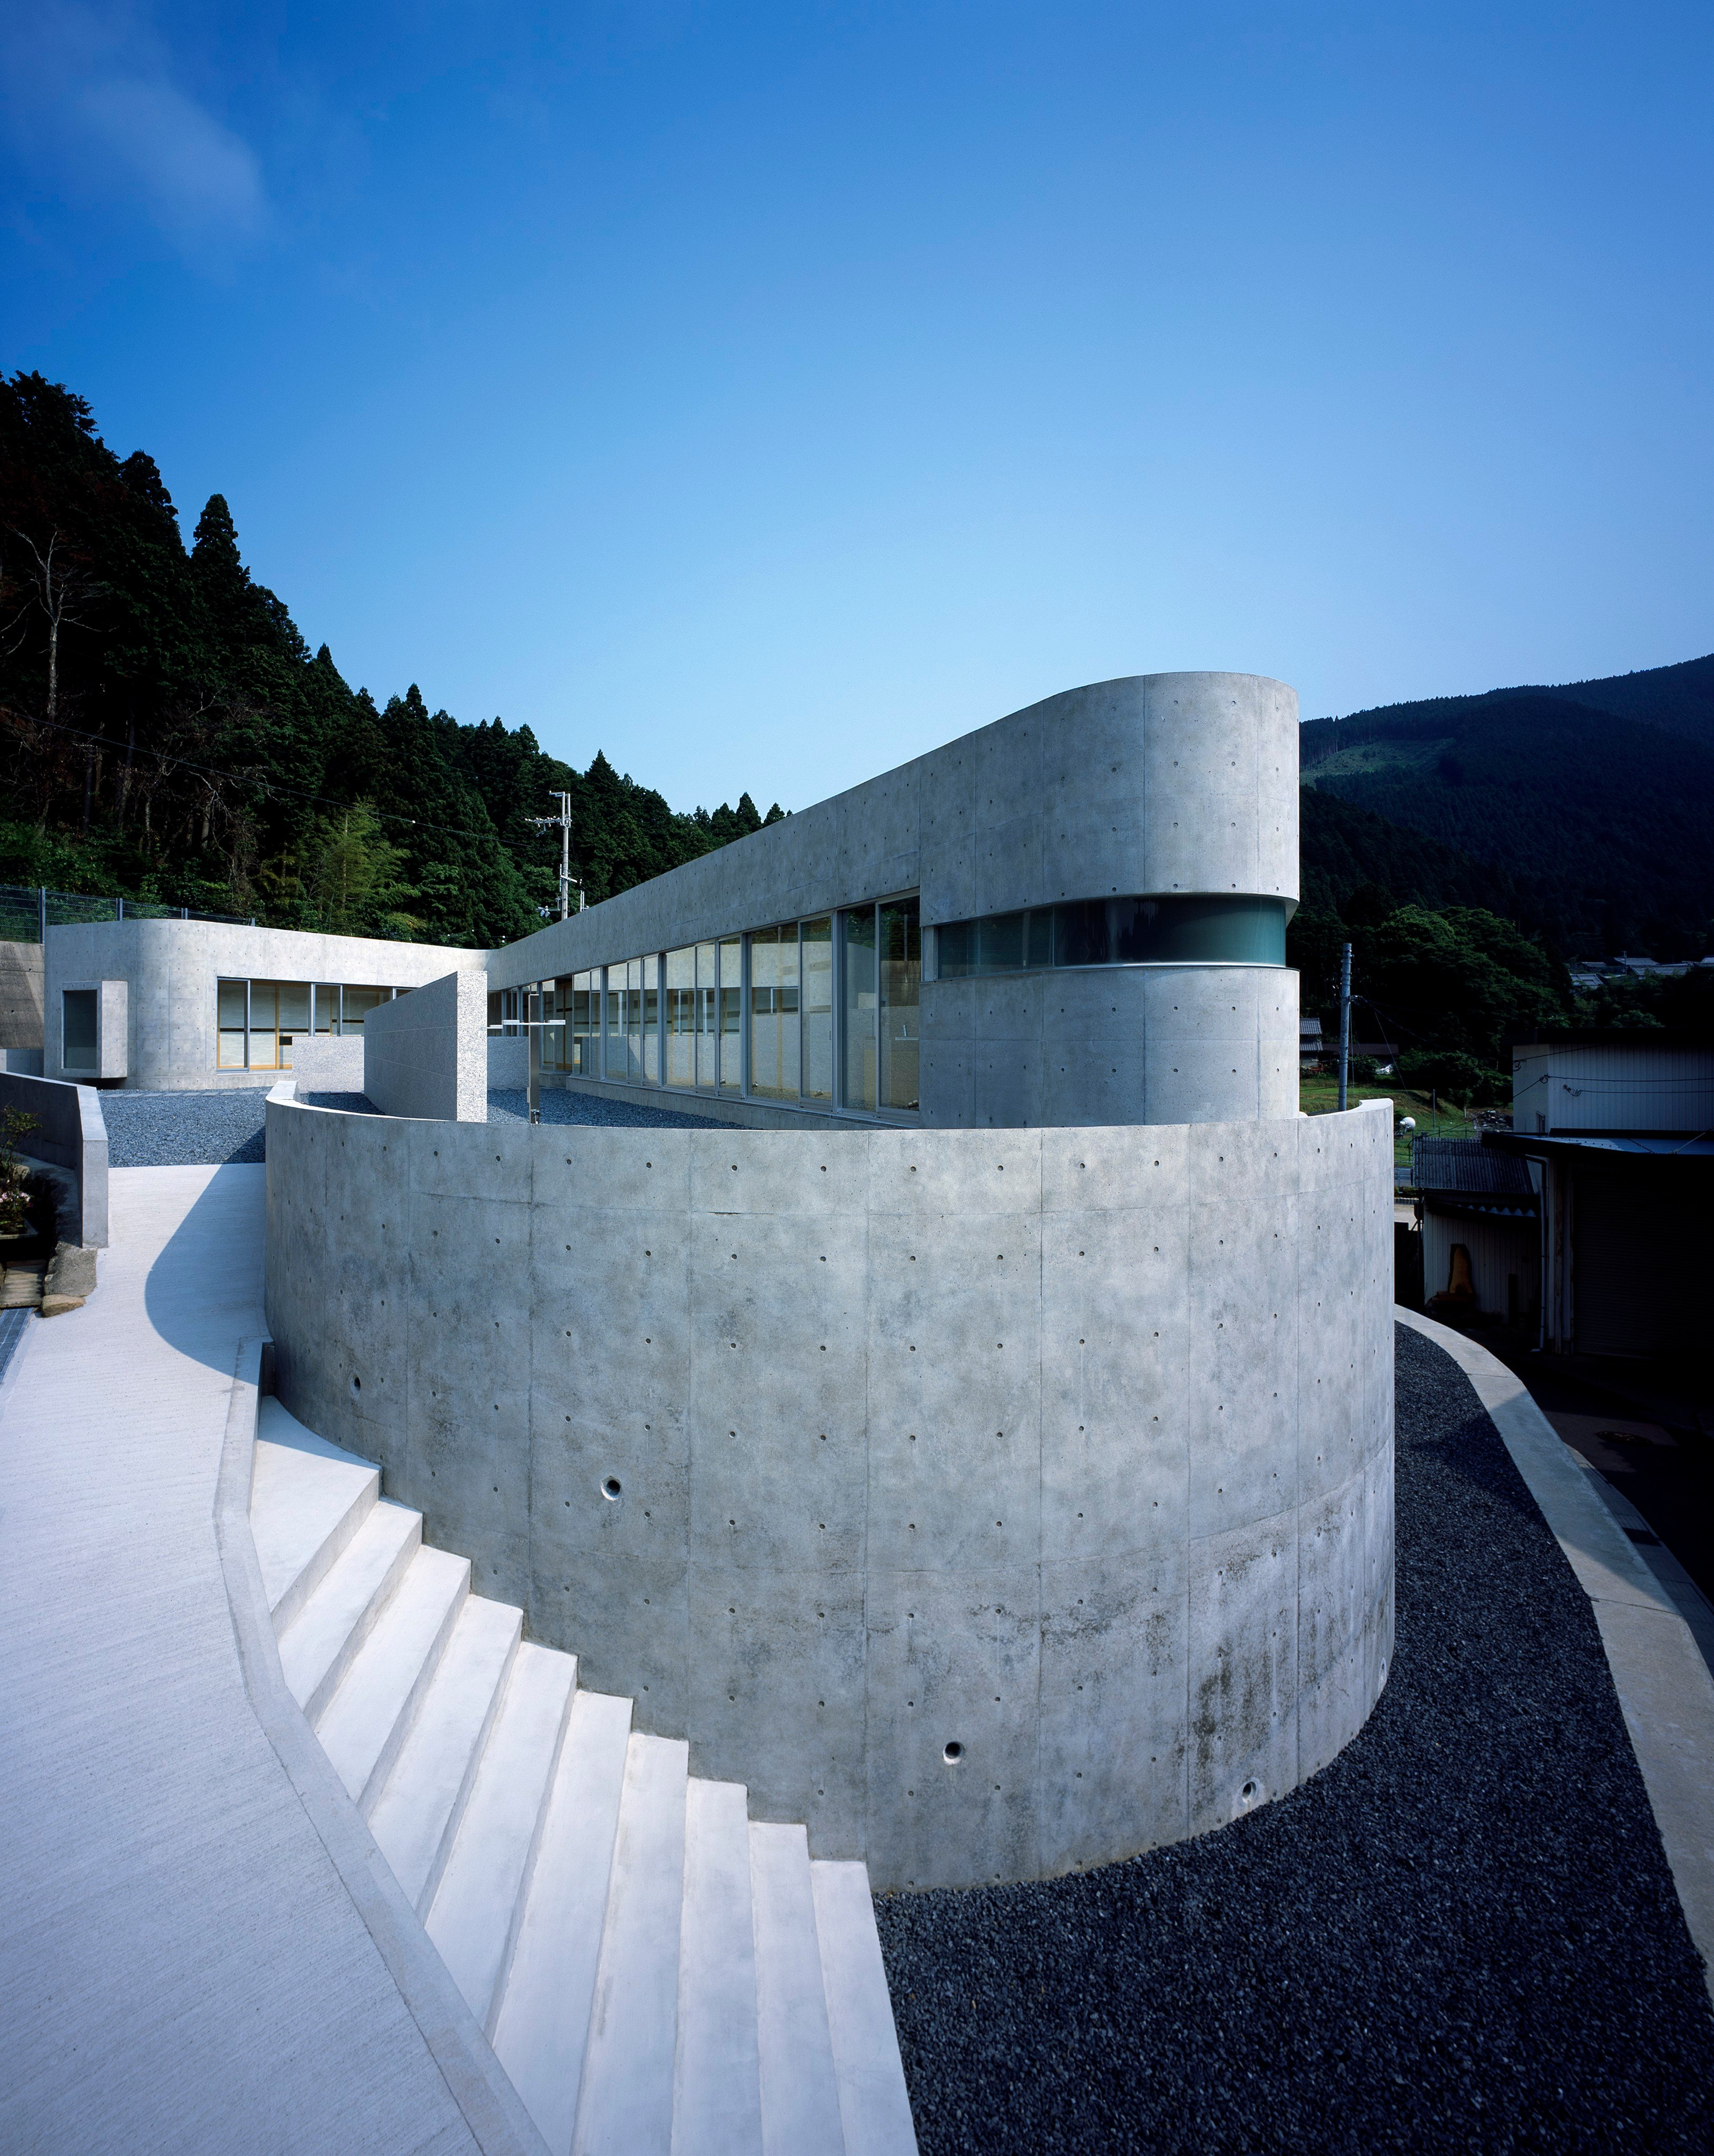 Exterior view of concrete home and exterior staircase from upper deck to lower veranda.